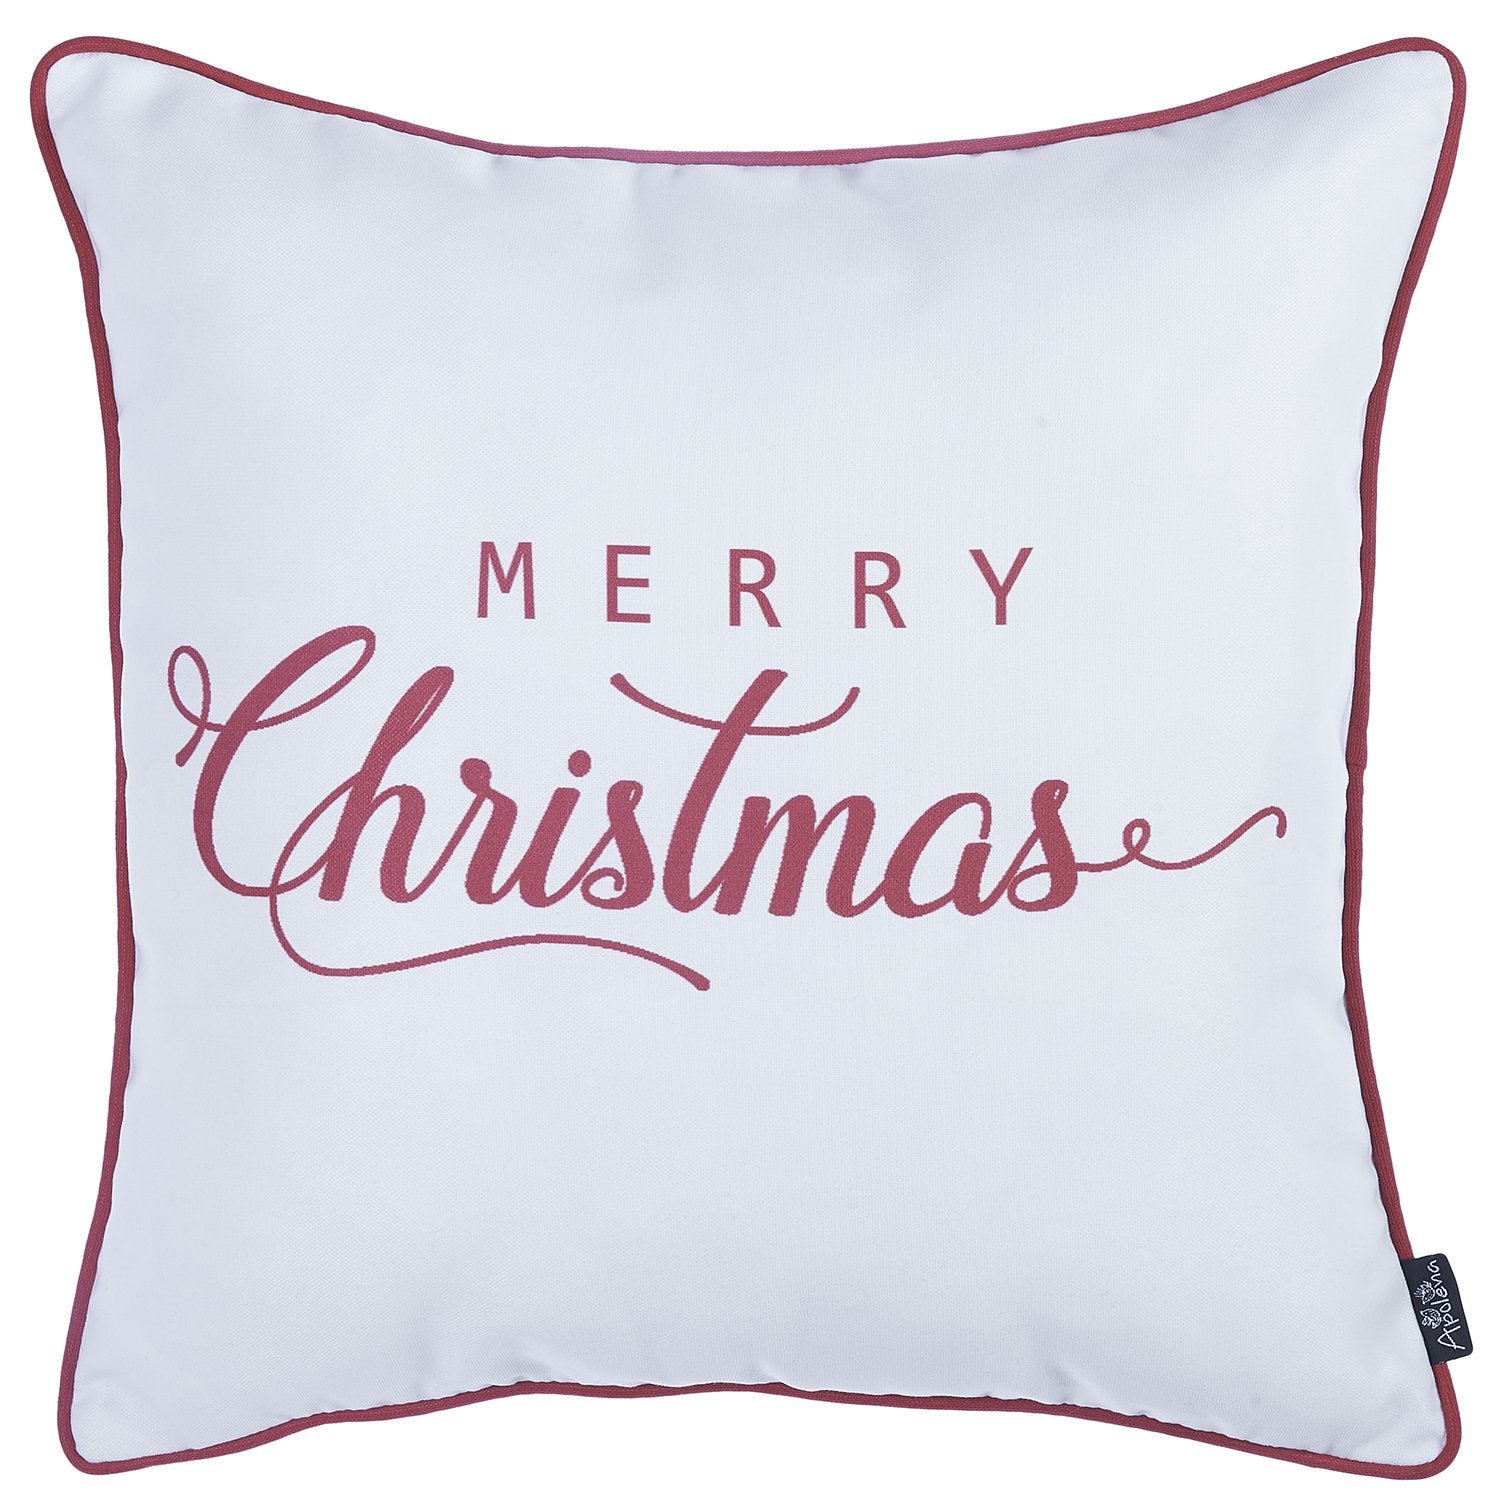 67ba1ec56b Christmas Red Quote Printed Decorative Throw Pillow Cover Home Decor  18